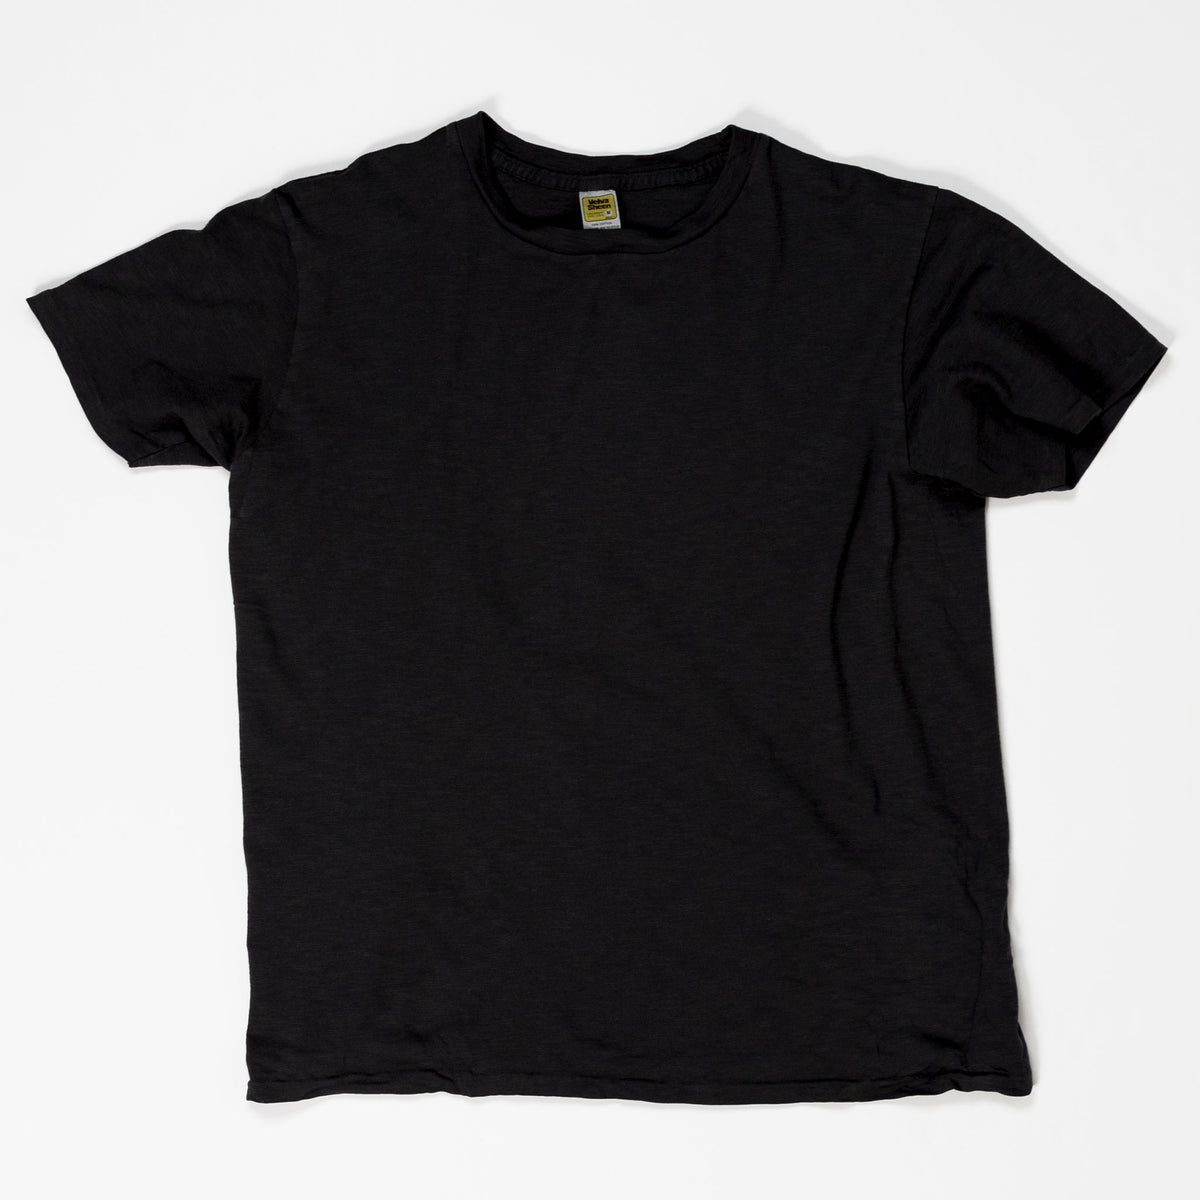 Regular Short Sleeve Tee - Black